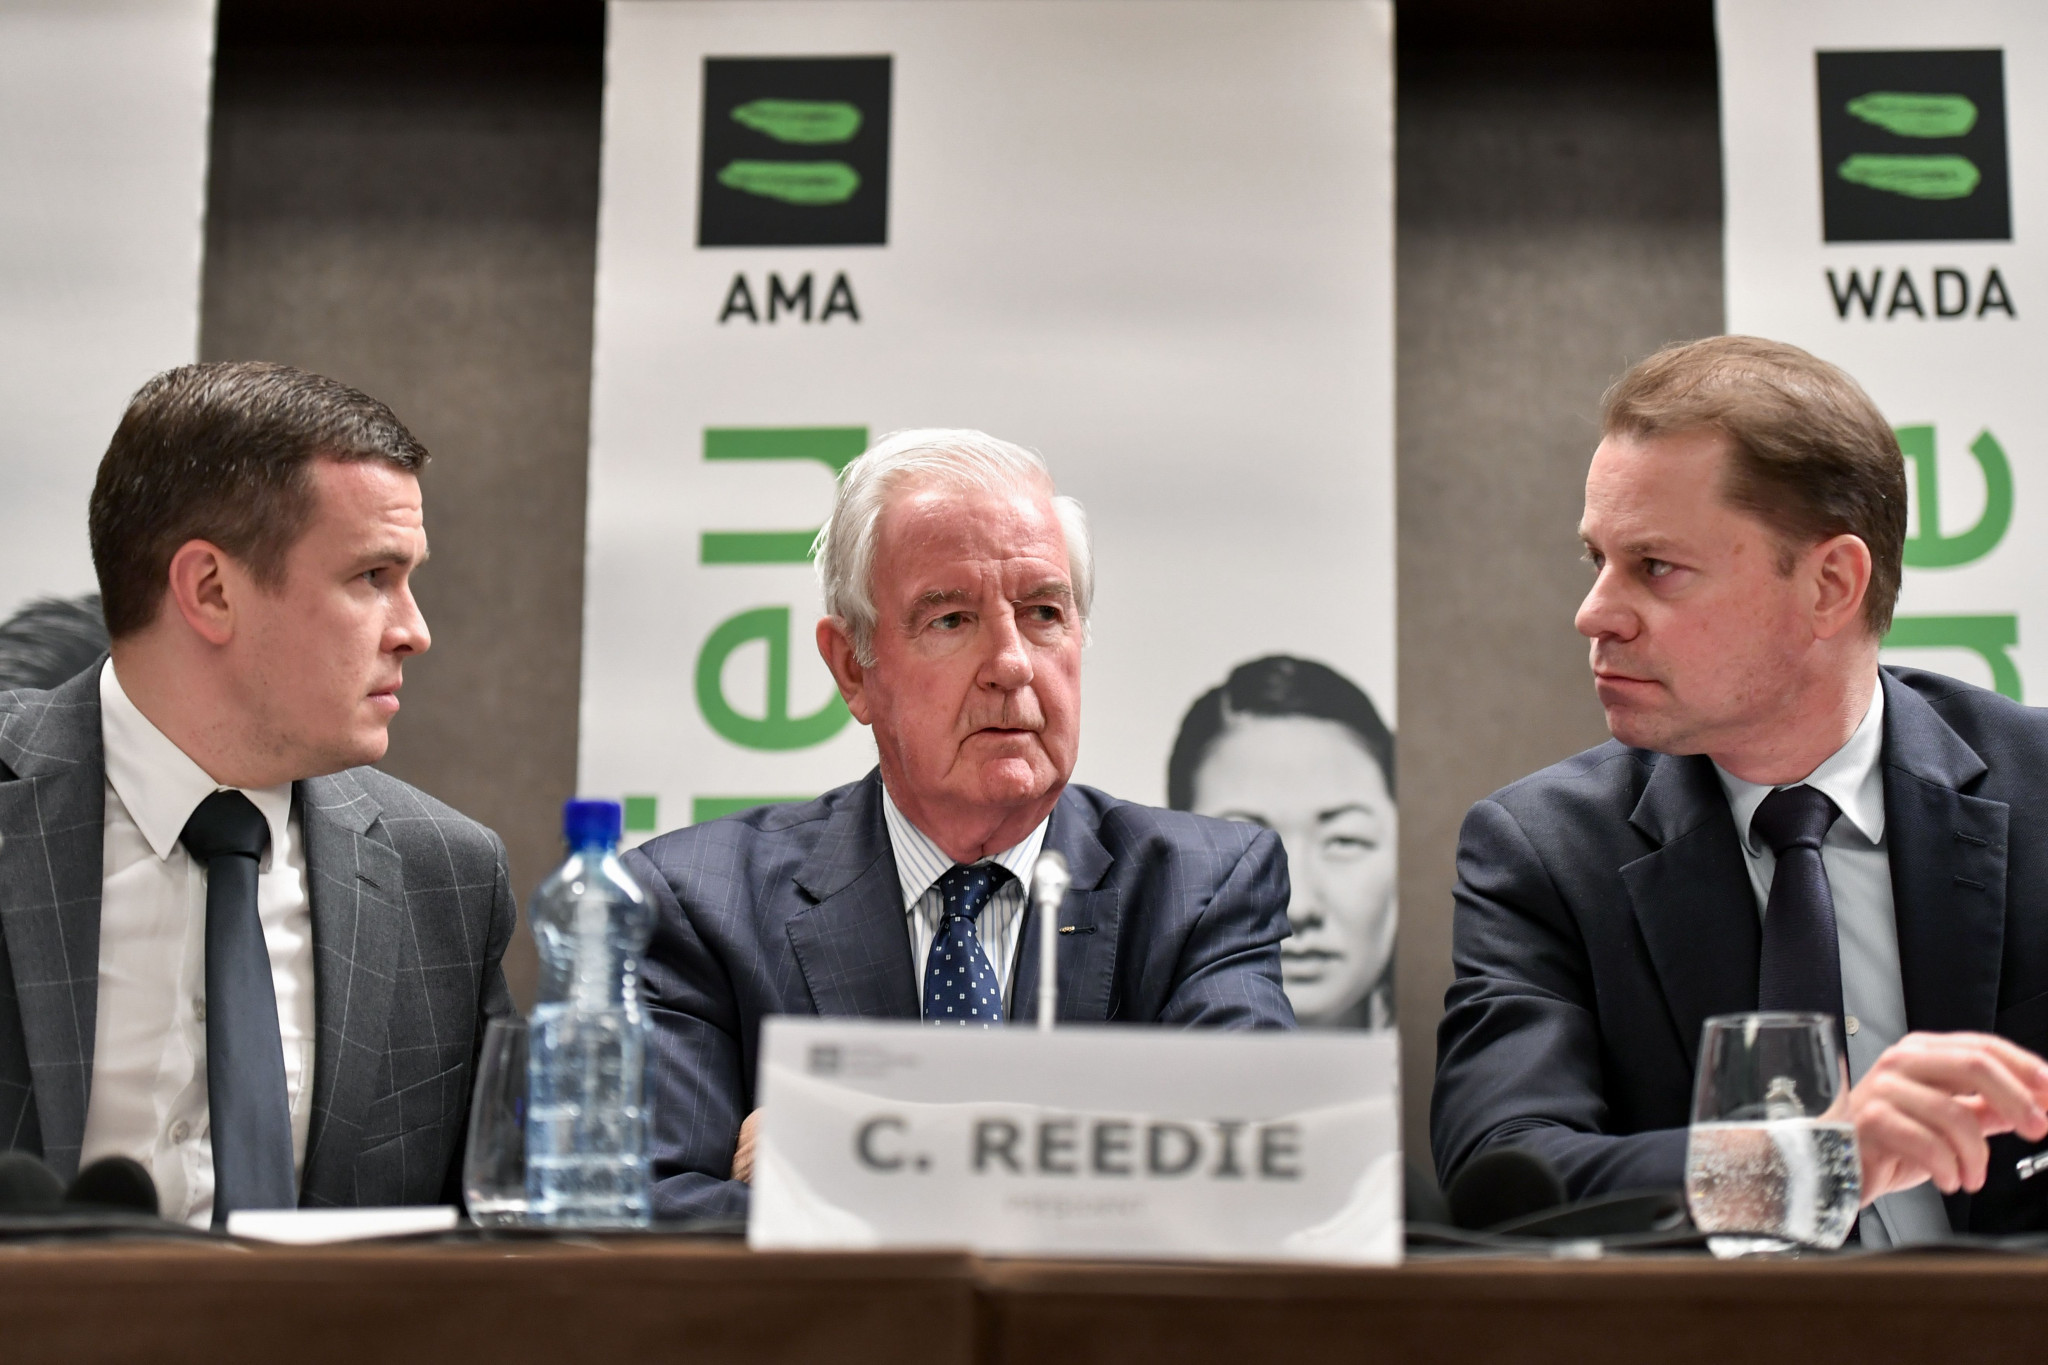 WADA President Sir Craig Reedie said the organisation had delivered a robust response with its decision on Russia ©Getty Images